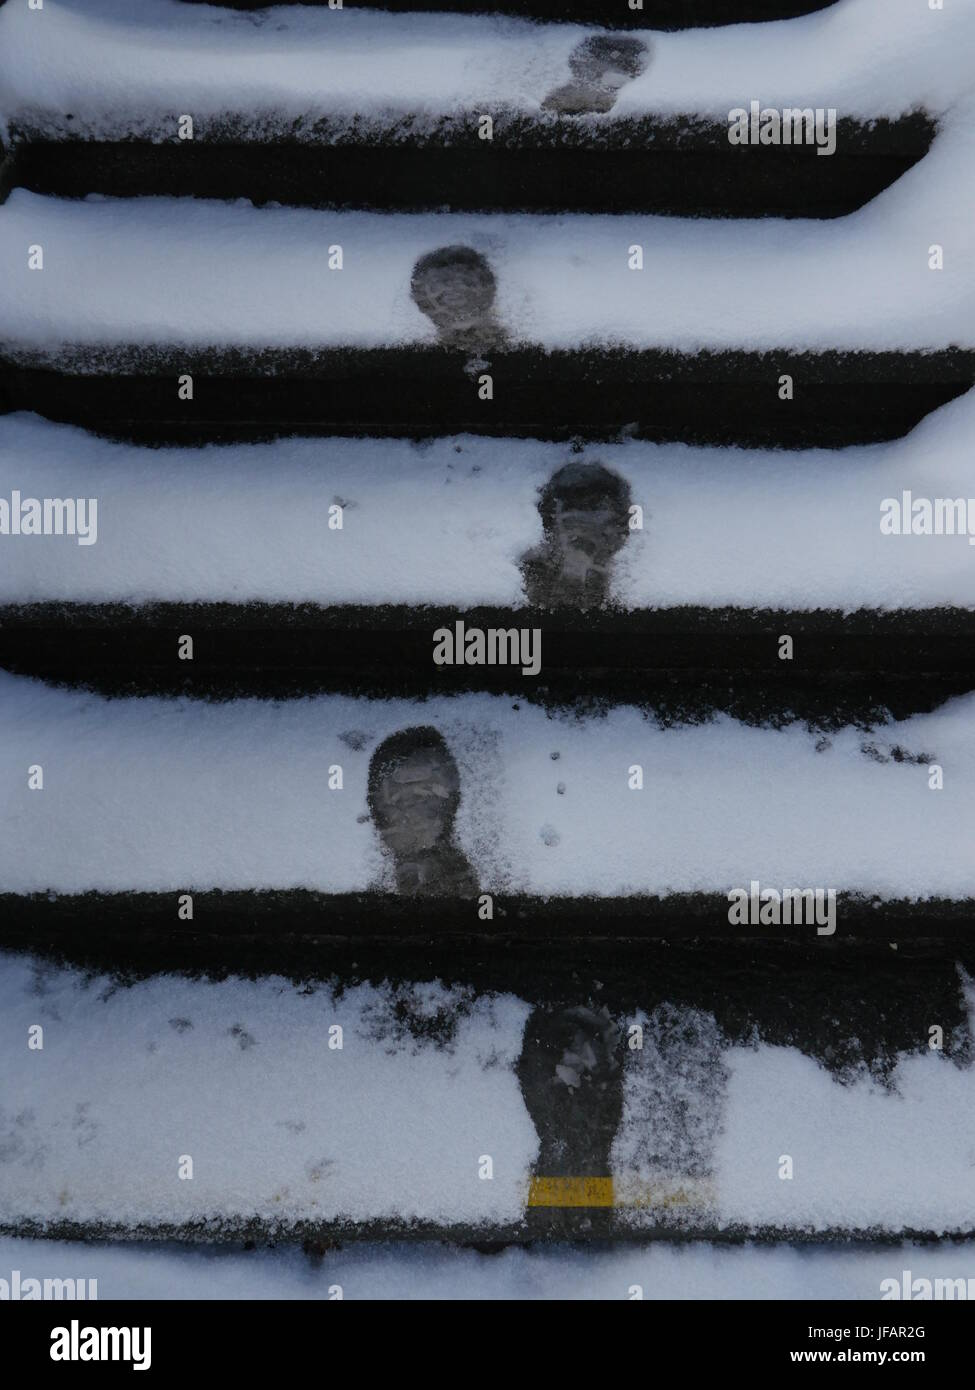 Closeup of footsteps in snow going forward - Stock Image